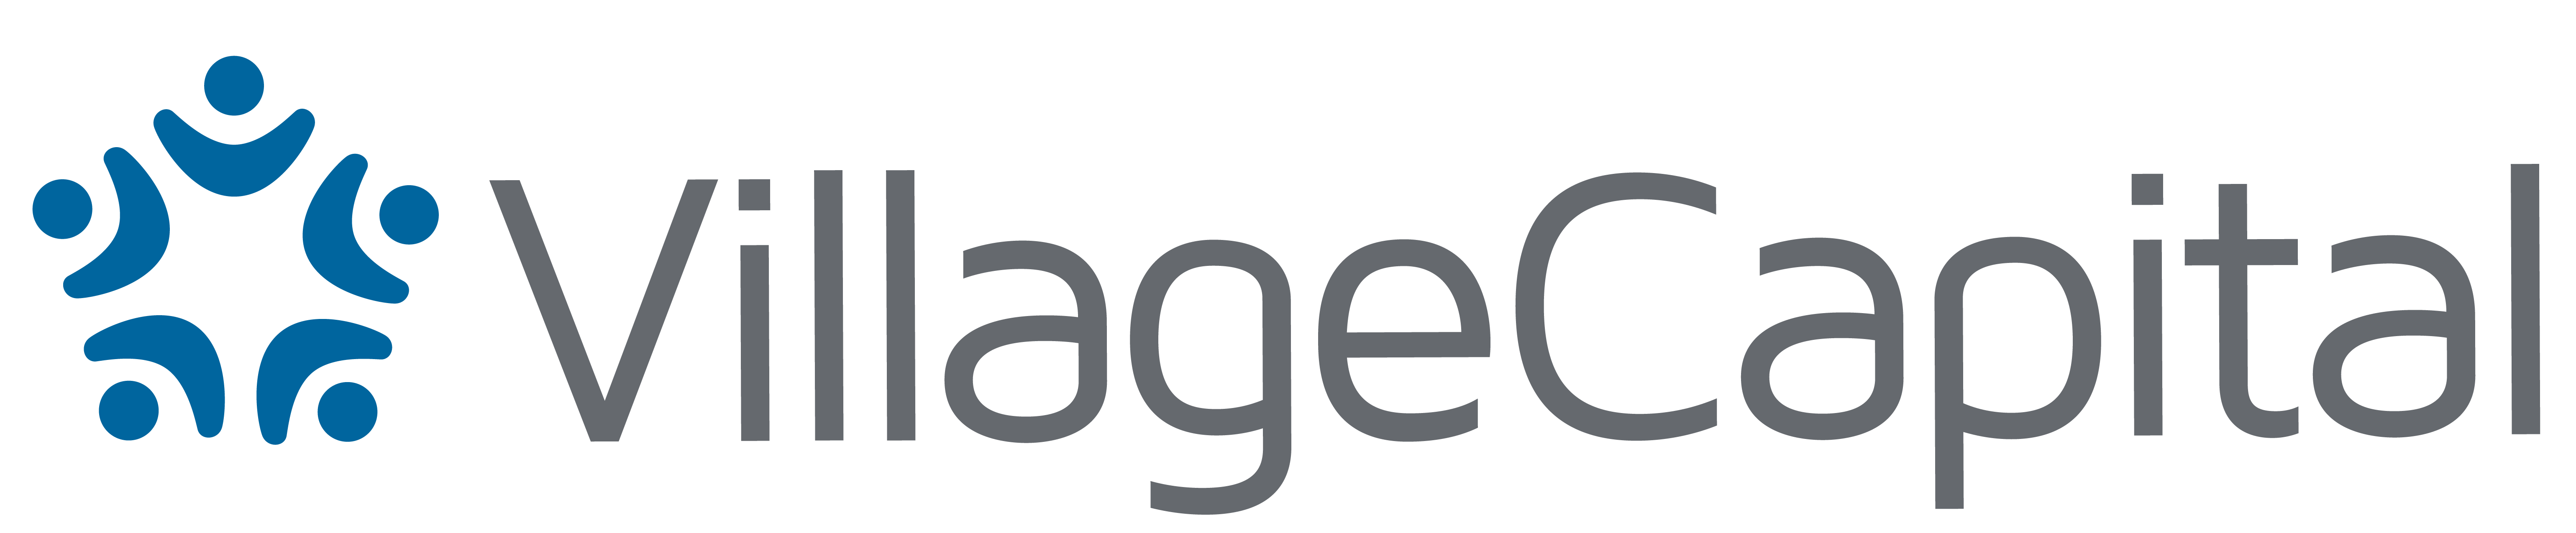 VillageCapital logo